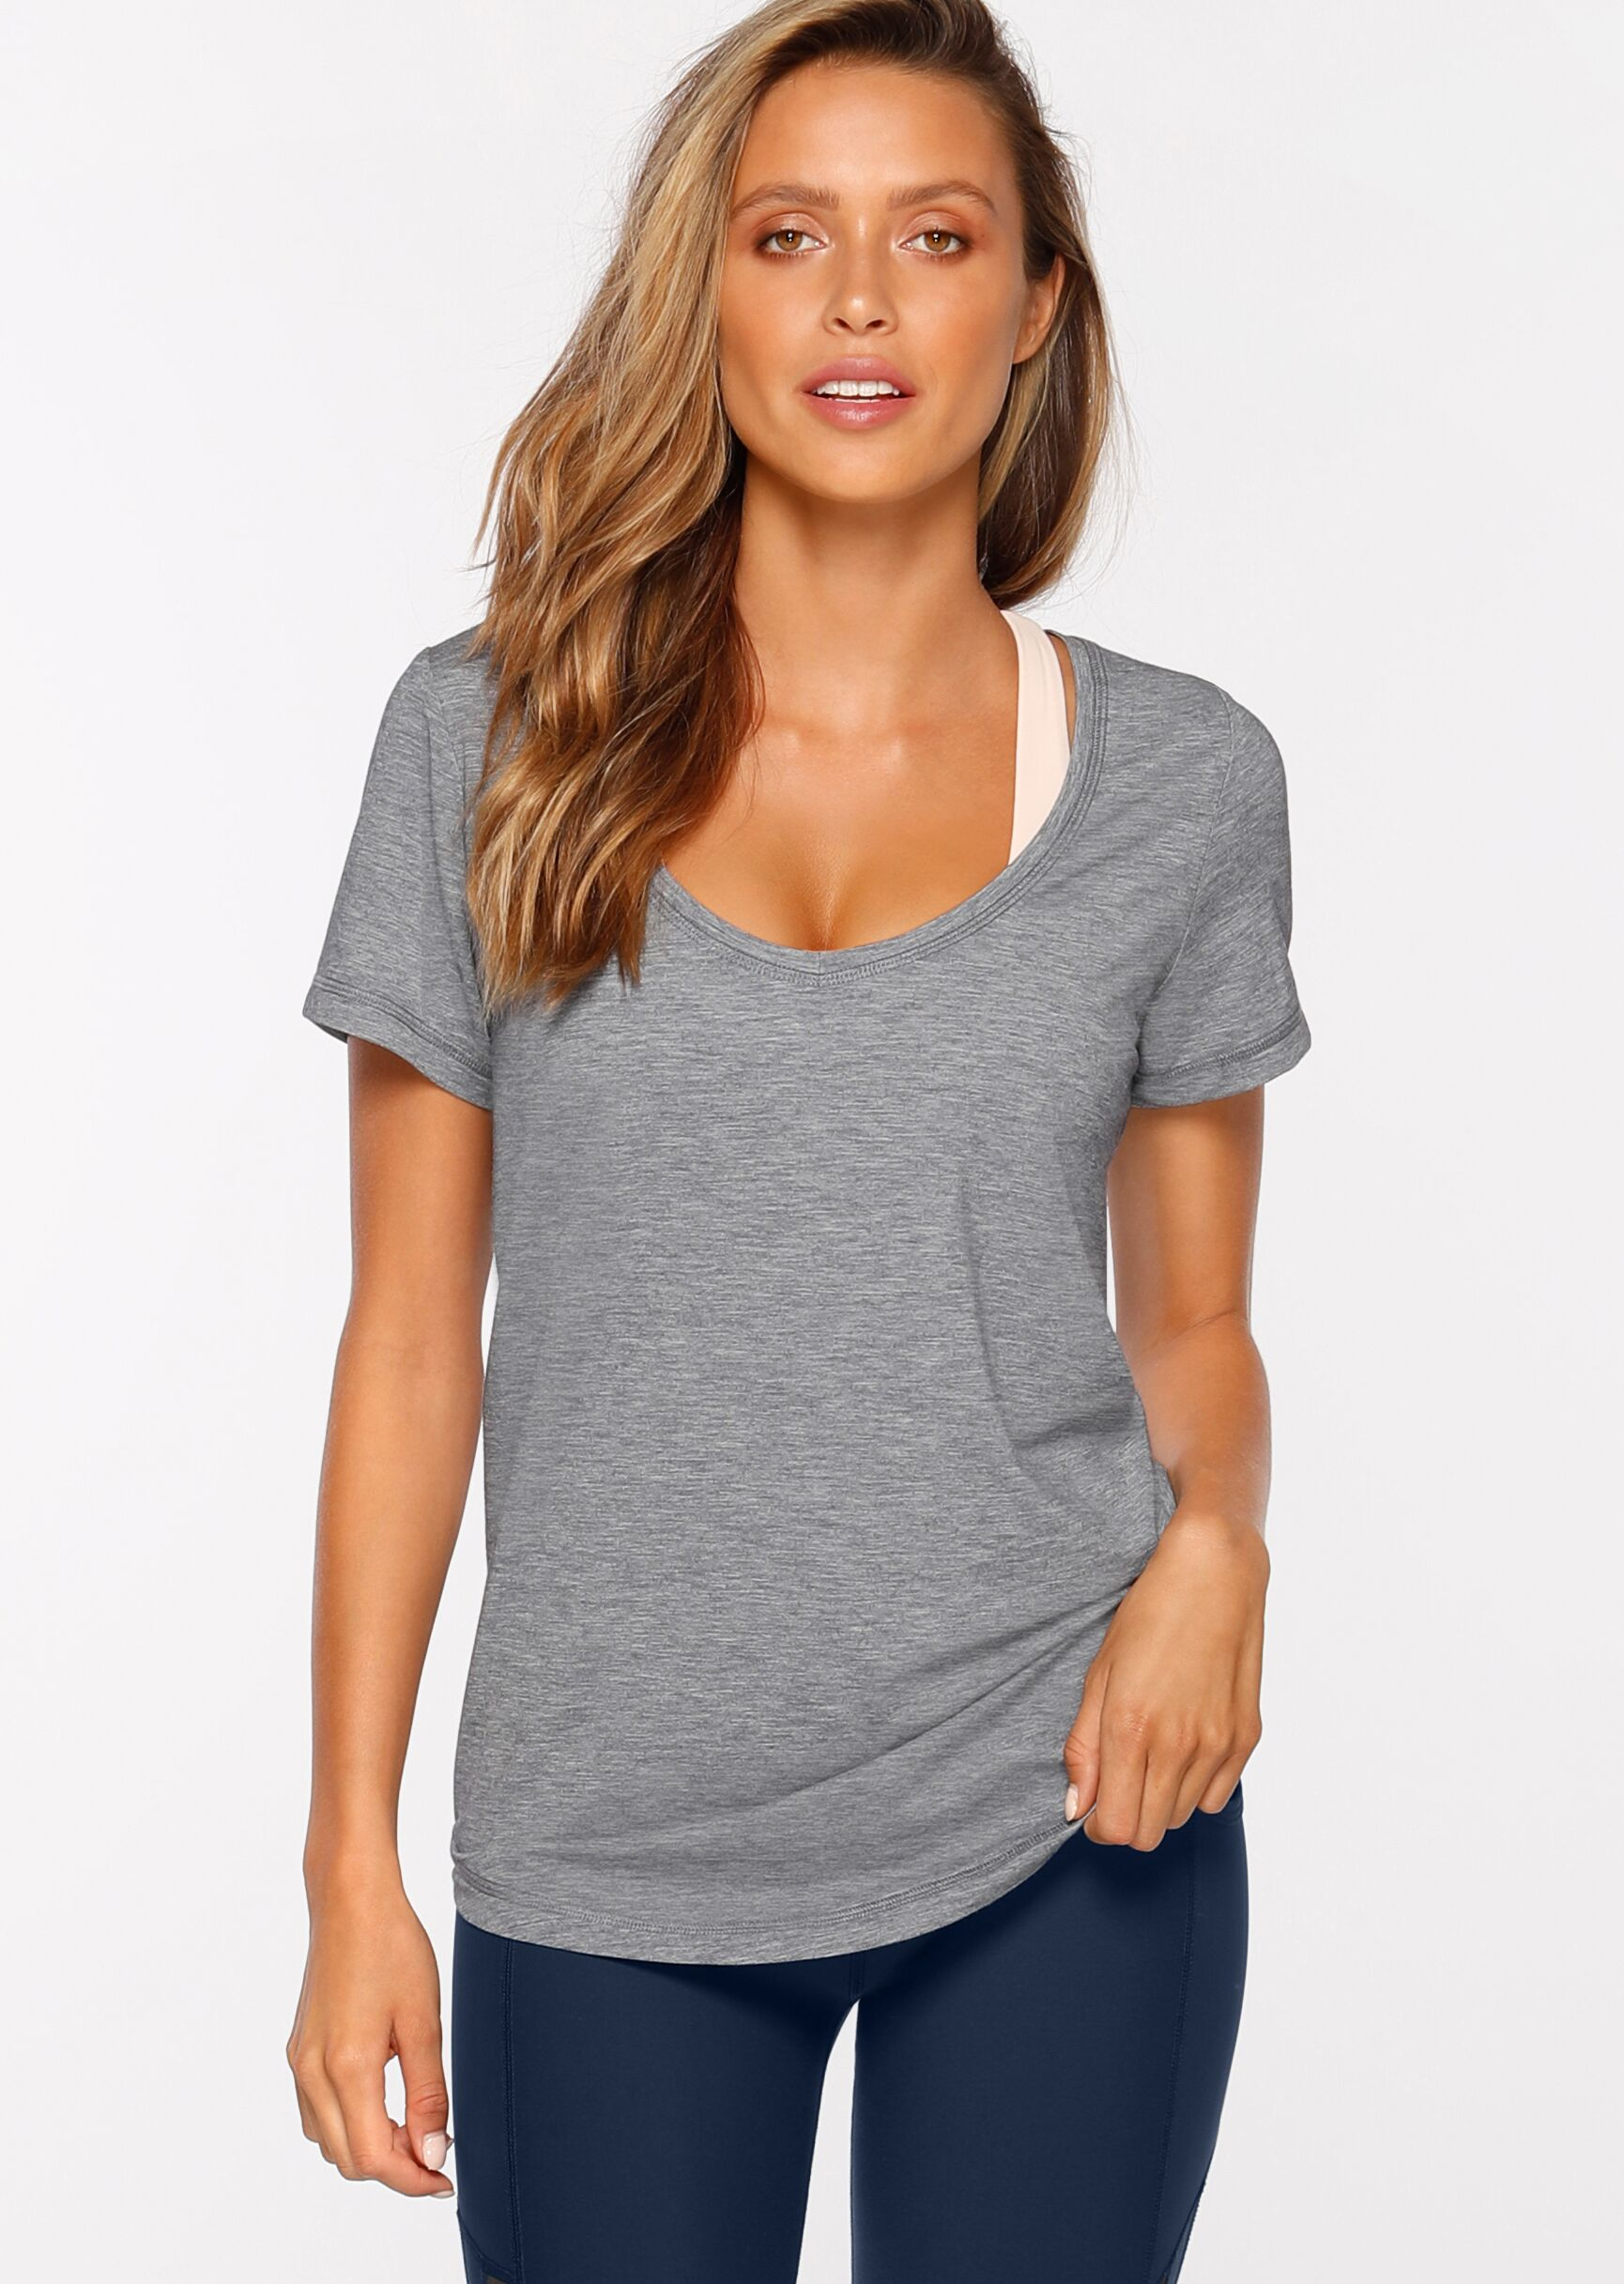 Workout Active Tee